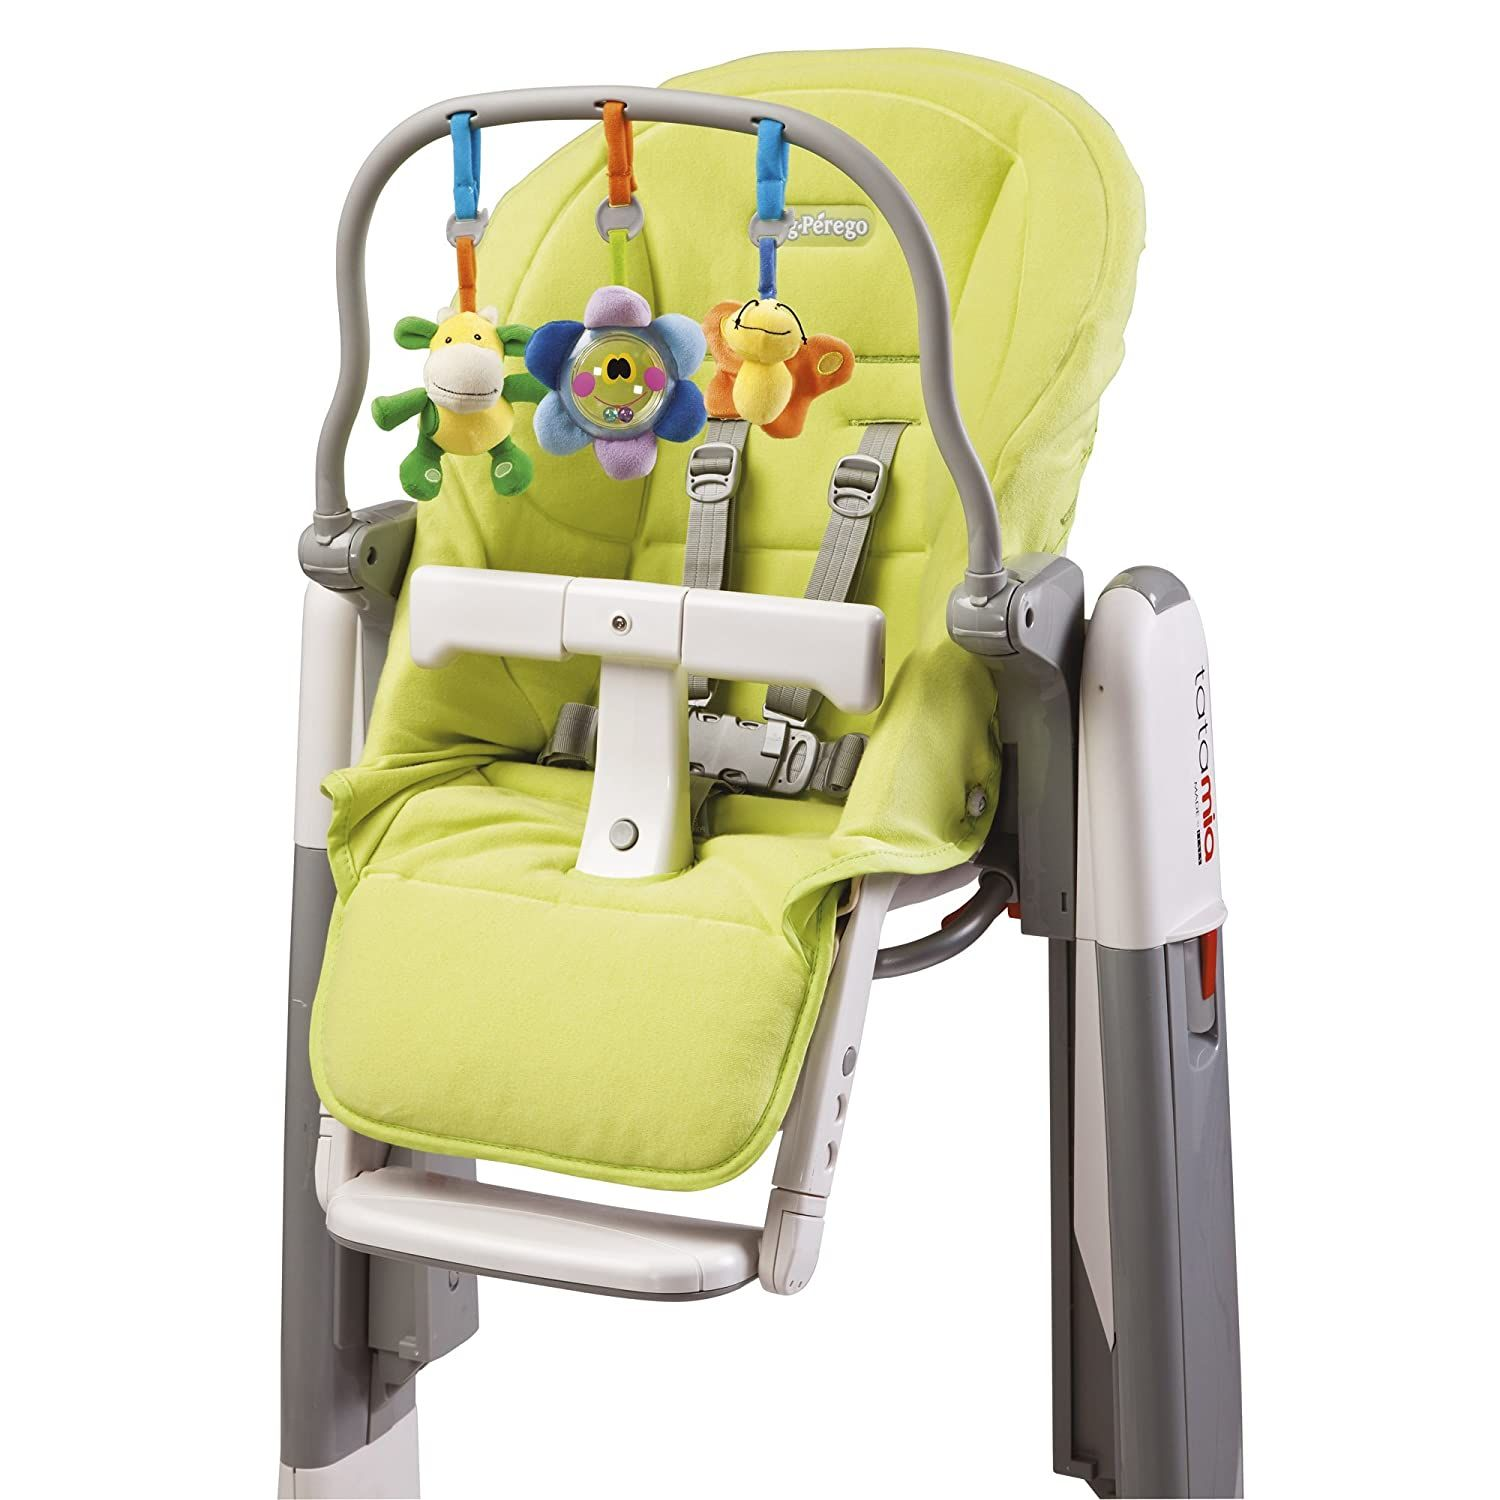 Peg Perego Tatamia Kit Verde In 2020 Peg Perego Baby High Chair Baby Swings